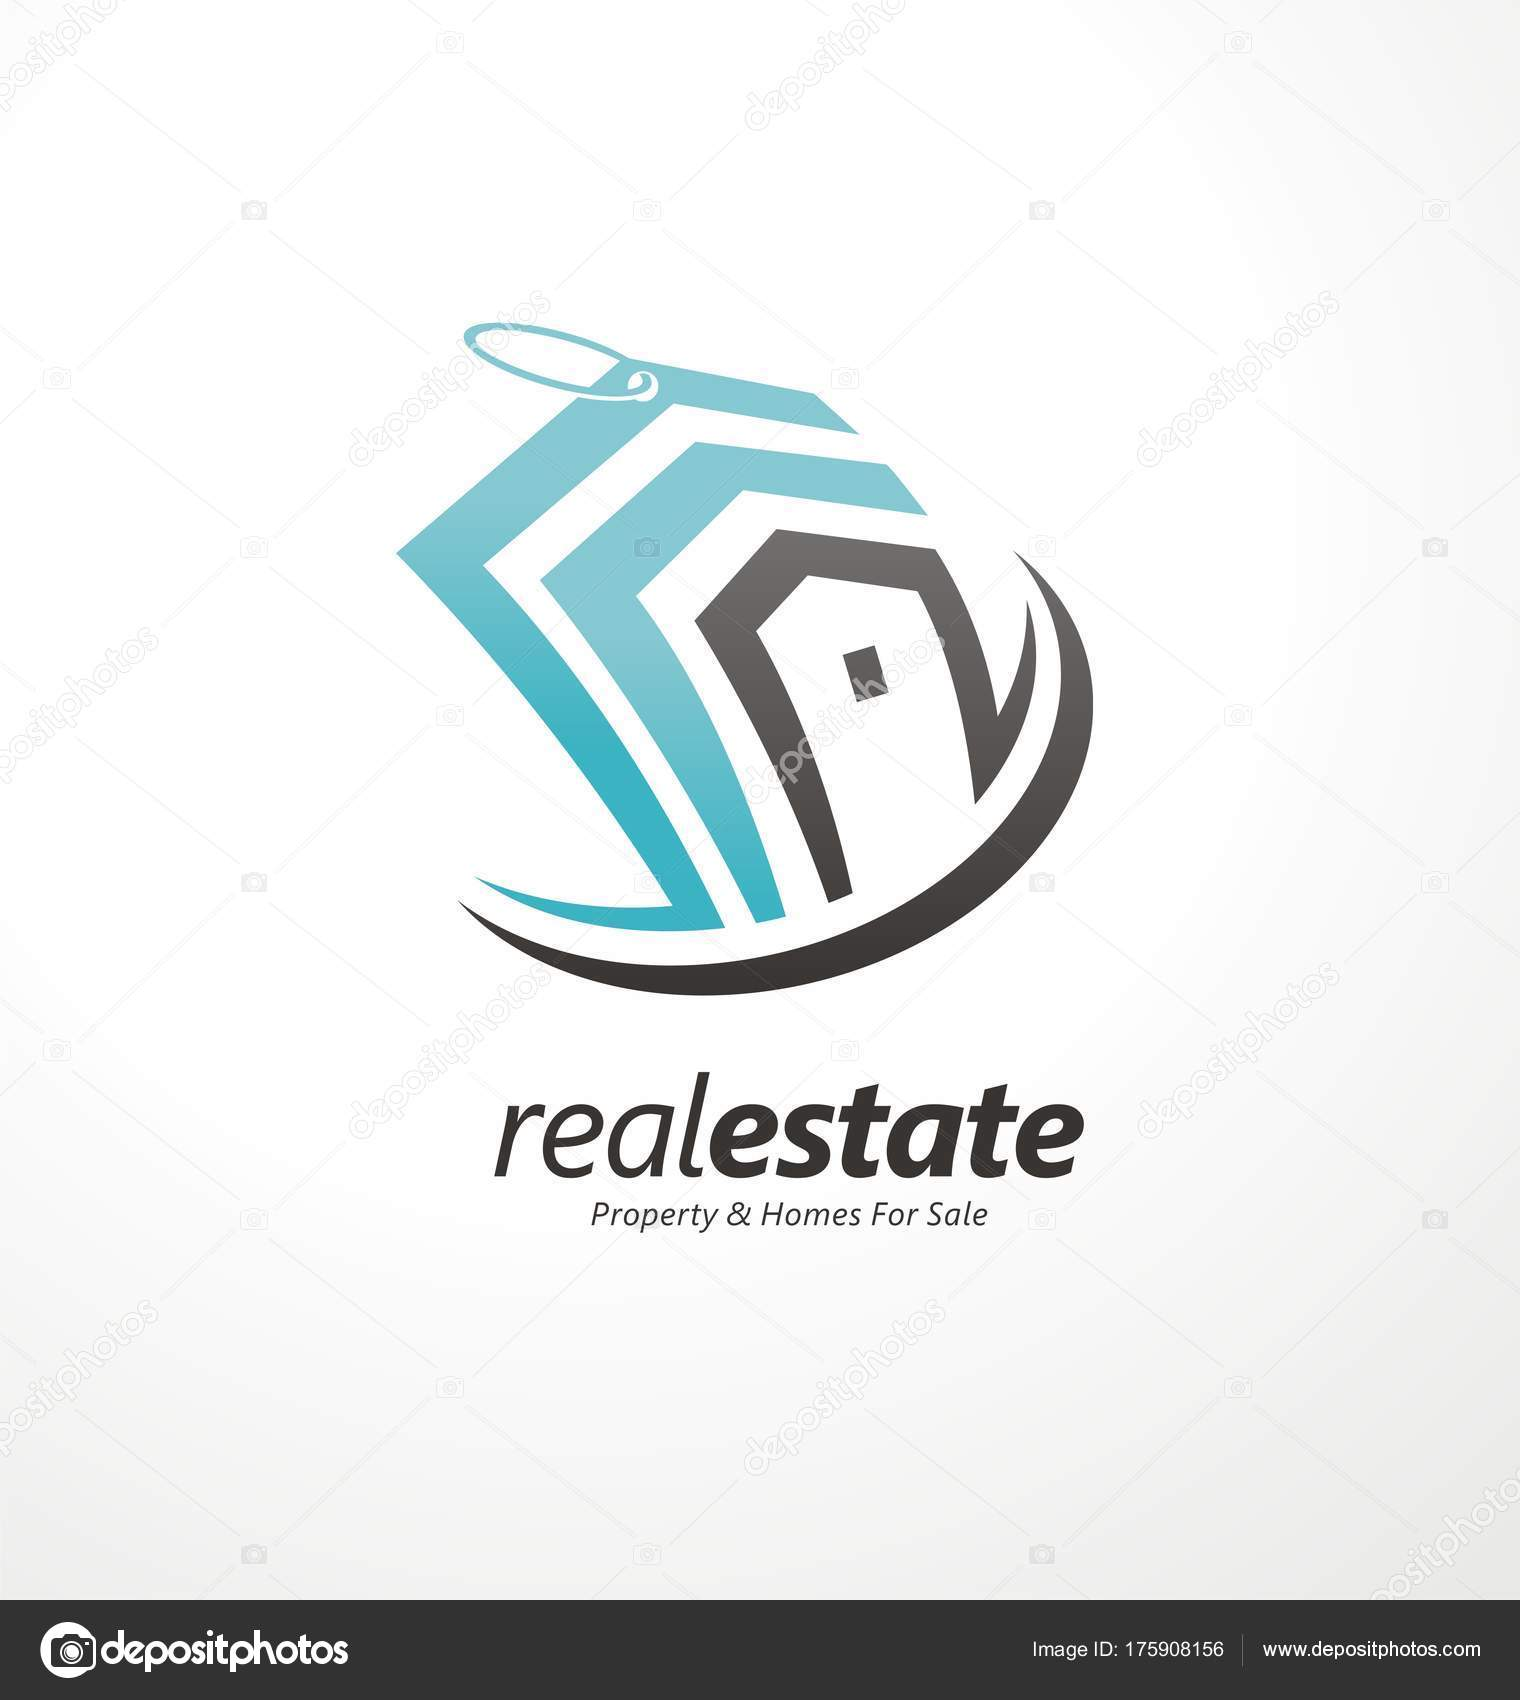 Real Estates Business Creative Logo Design Concept Home Logo Idea ...